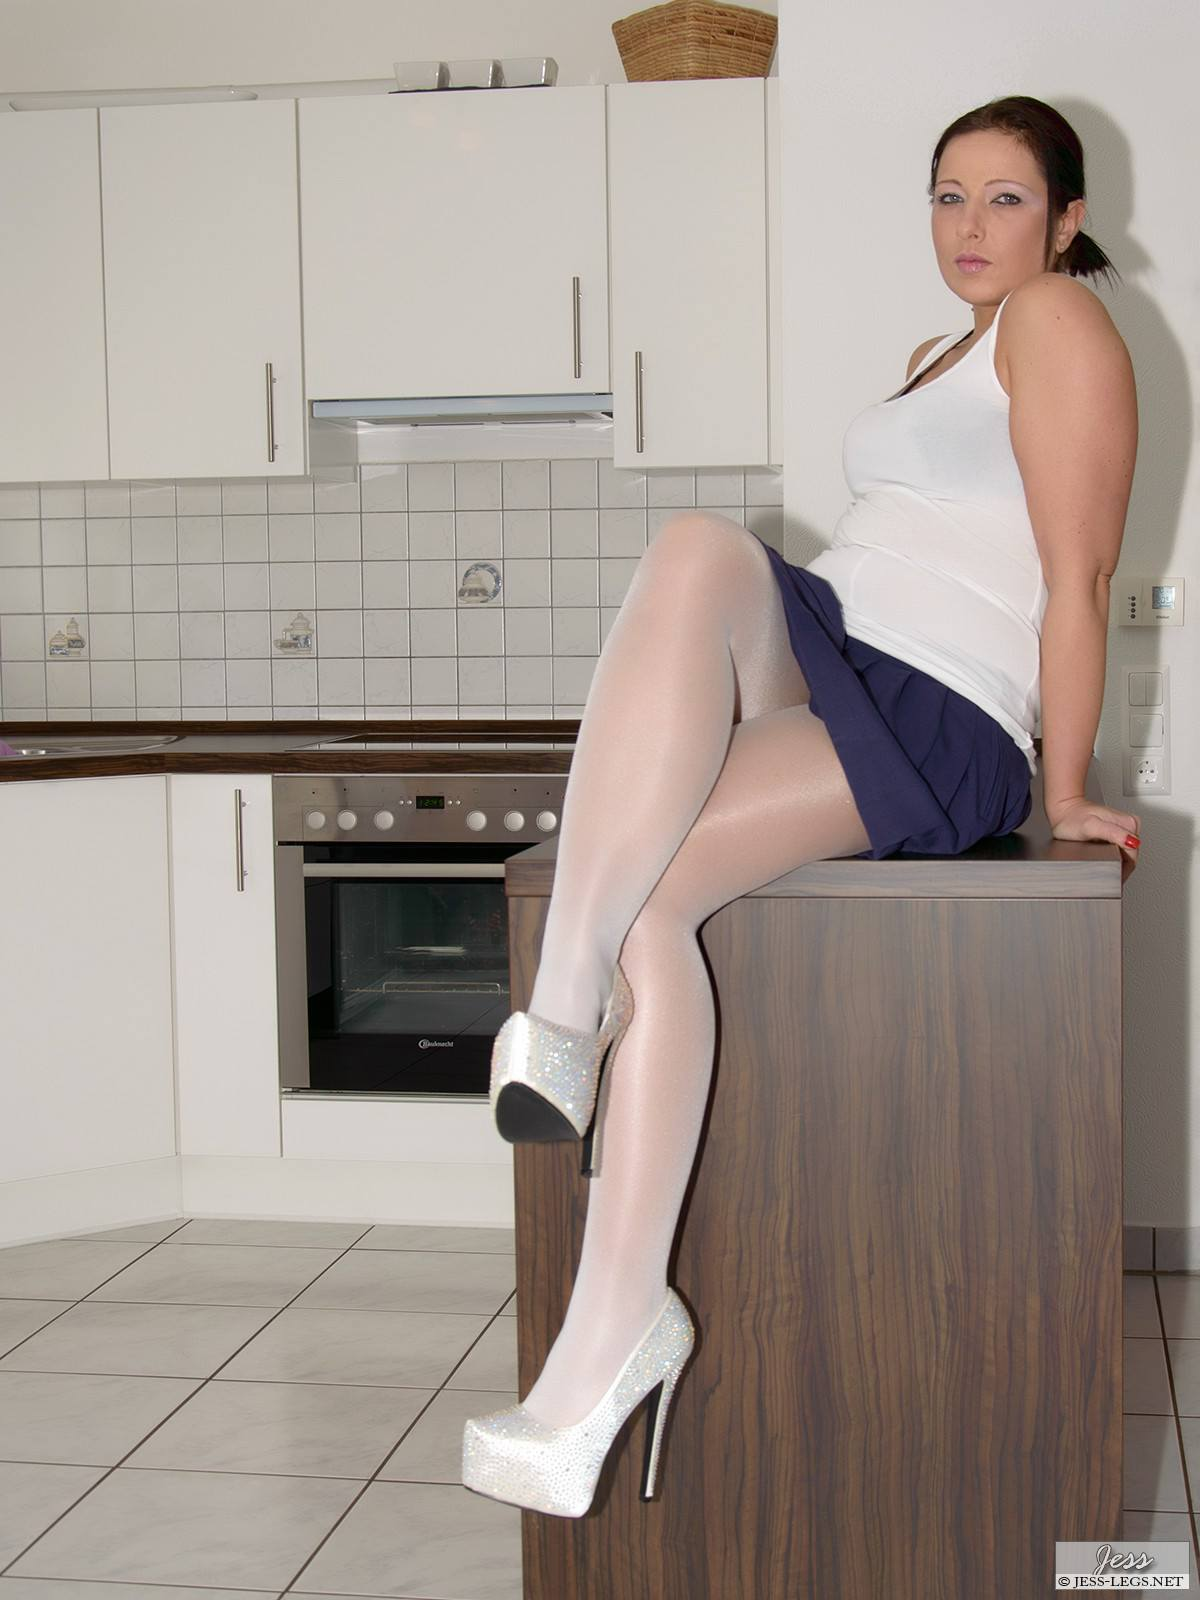 Dvd Quality Pantyhose Videos Is Here